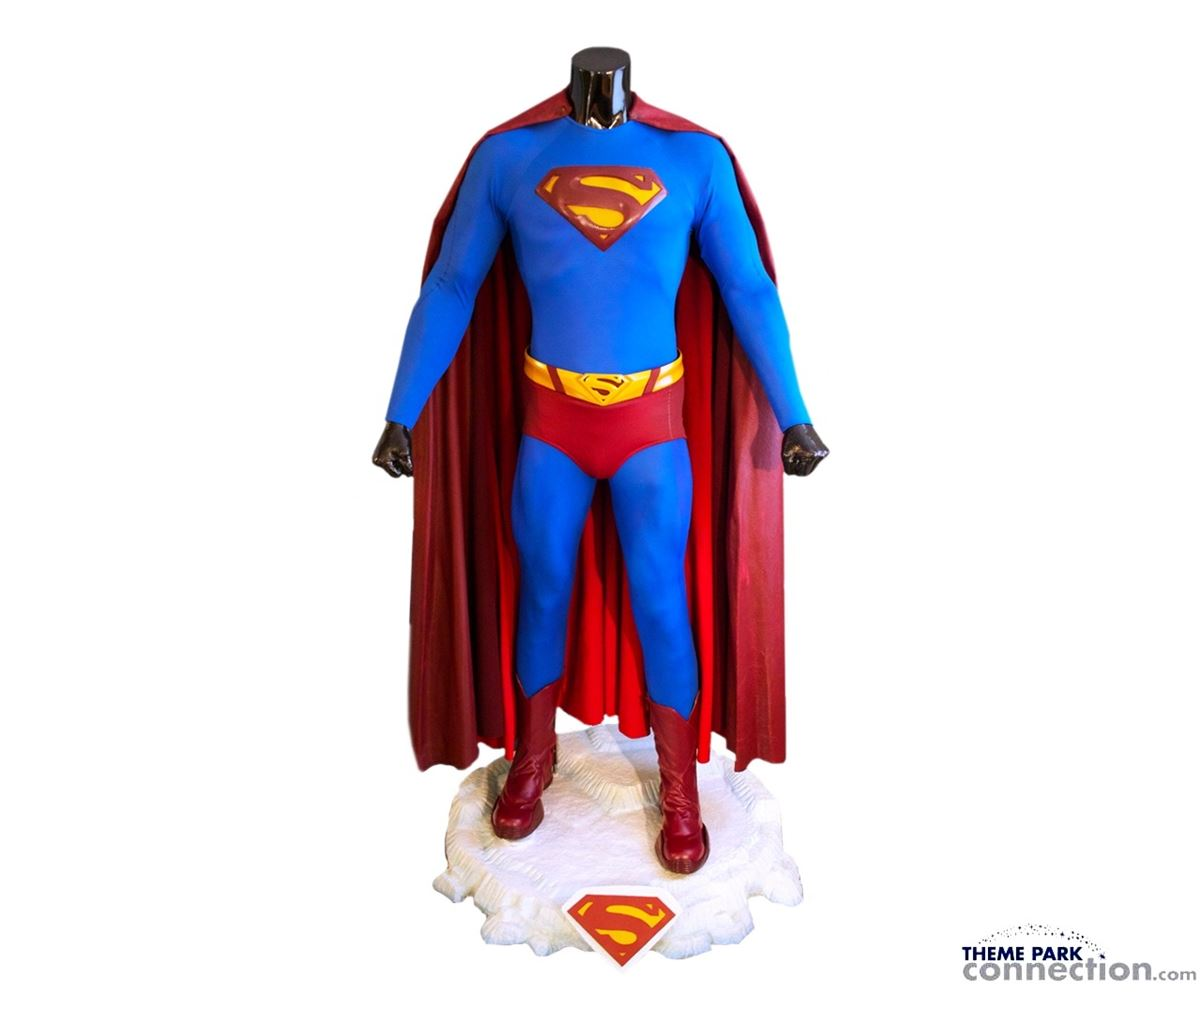 Image 1  Superman Returns 2006 Brandon Ruth Complete Hero Flying Suit With Custom Ice Base ...  sc 1 st  iCollector.com & Superman Returns 2006 Brandon Ruth Complete Hero Flying Suit With ...